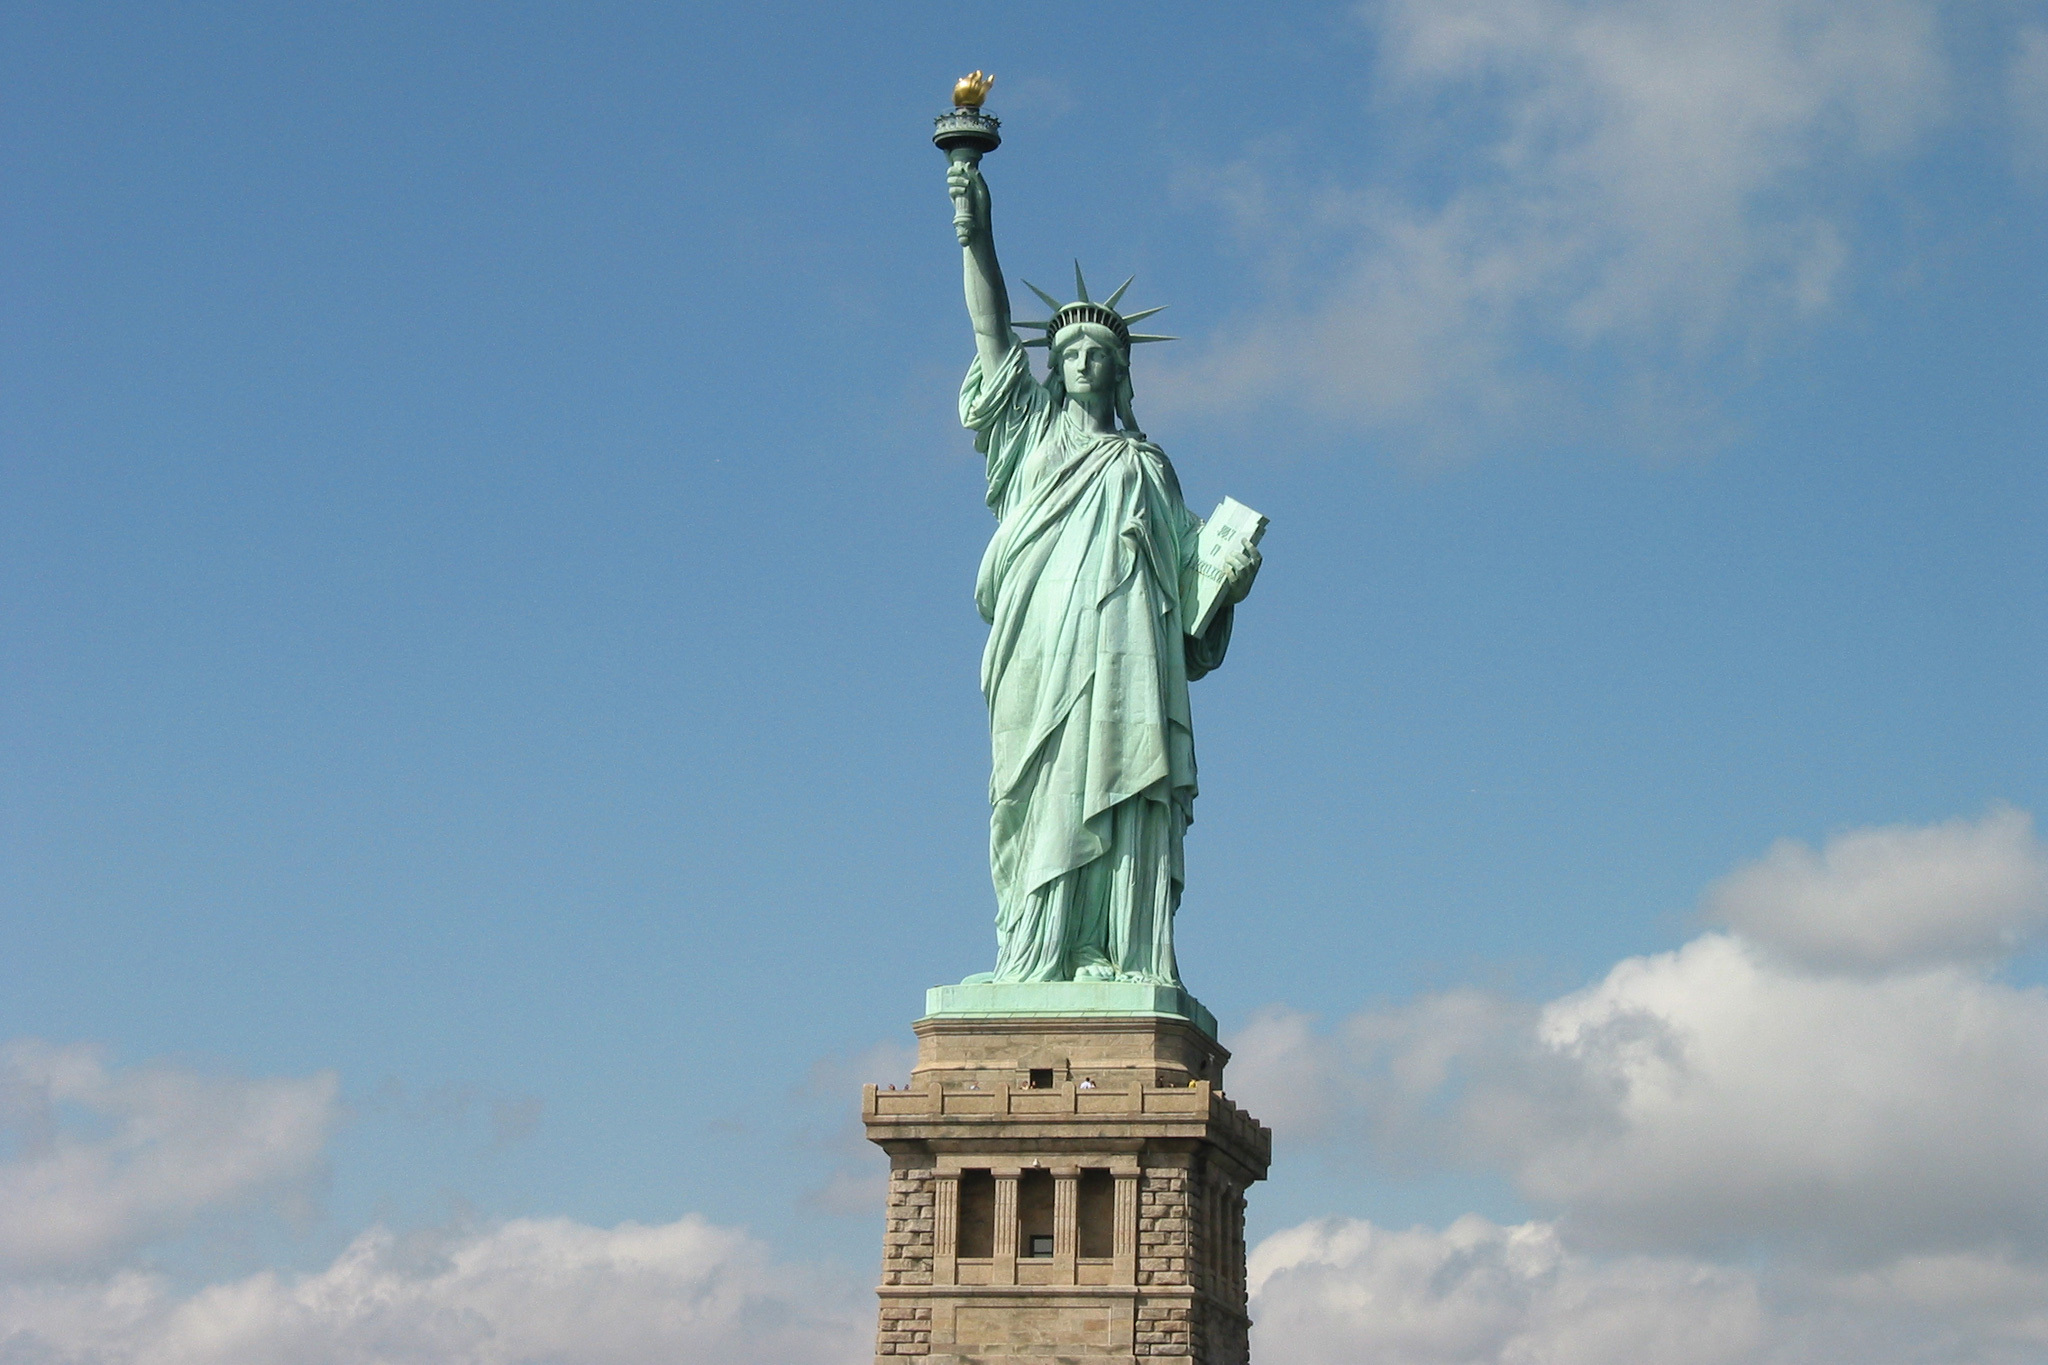 New york attractions the statue of liberty slide show for Attractions in new york new york